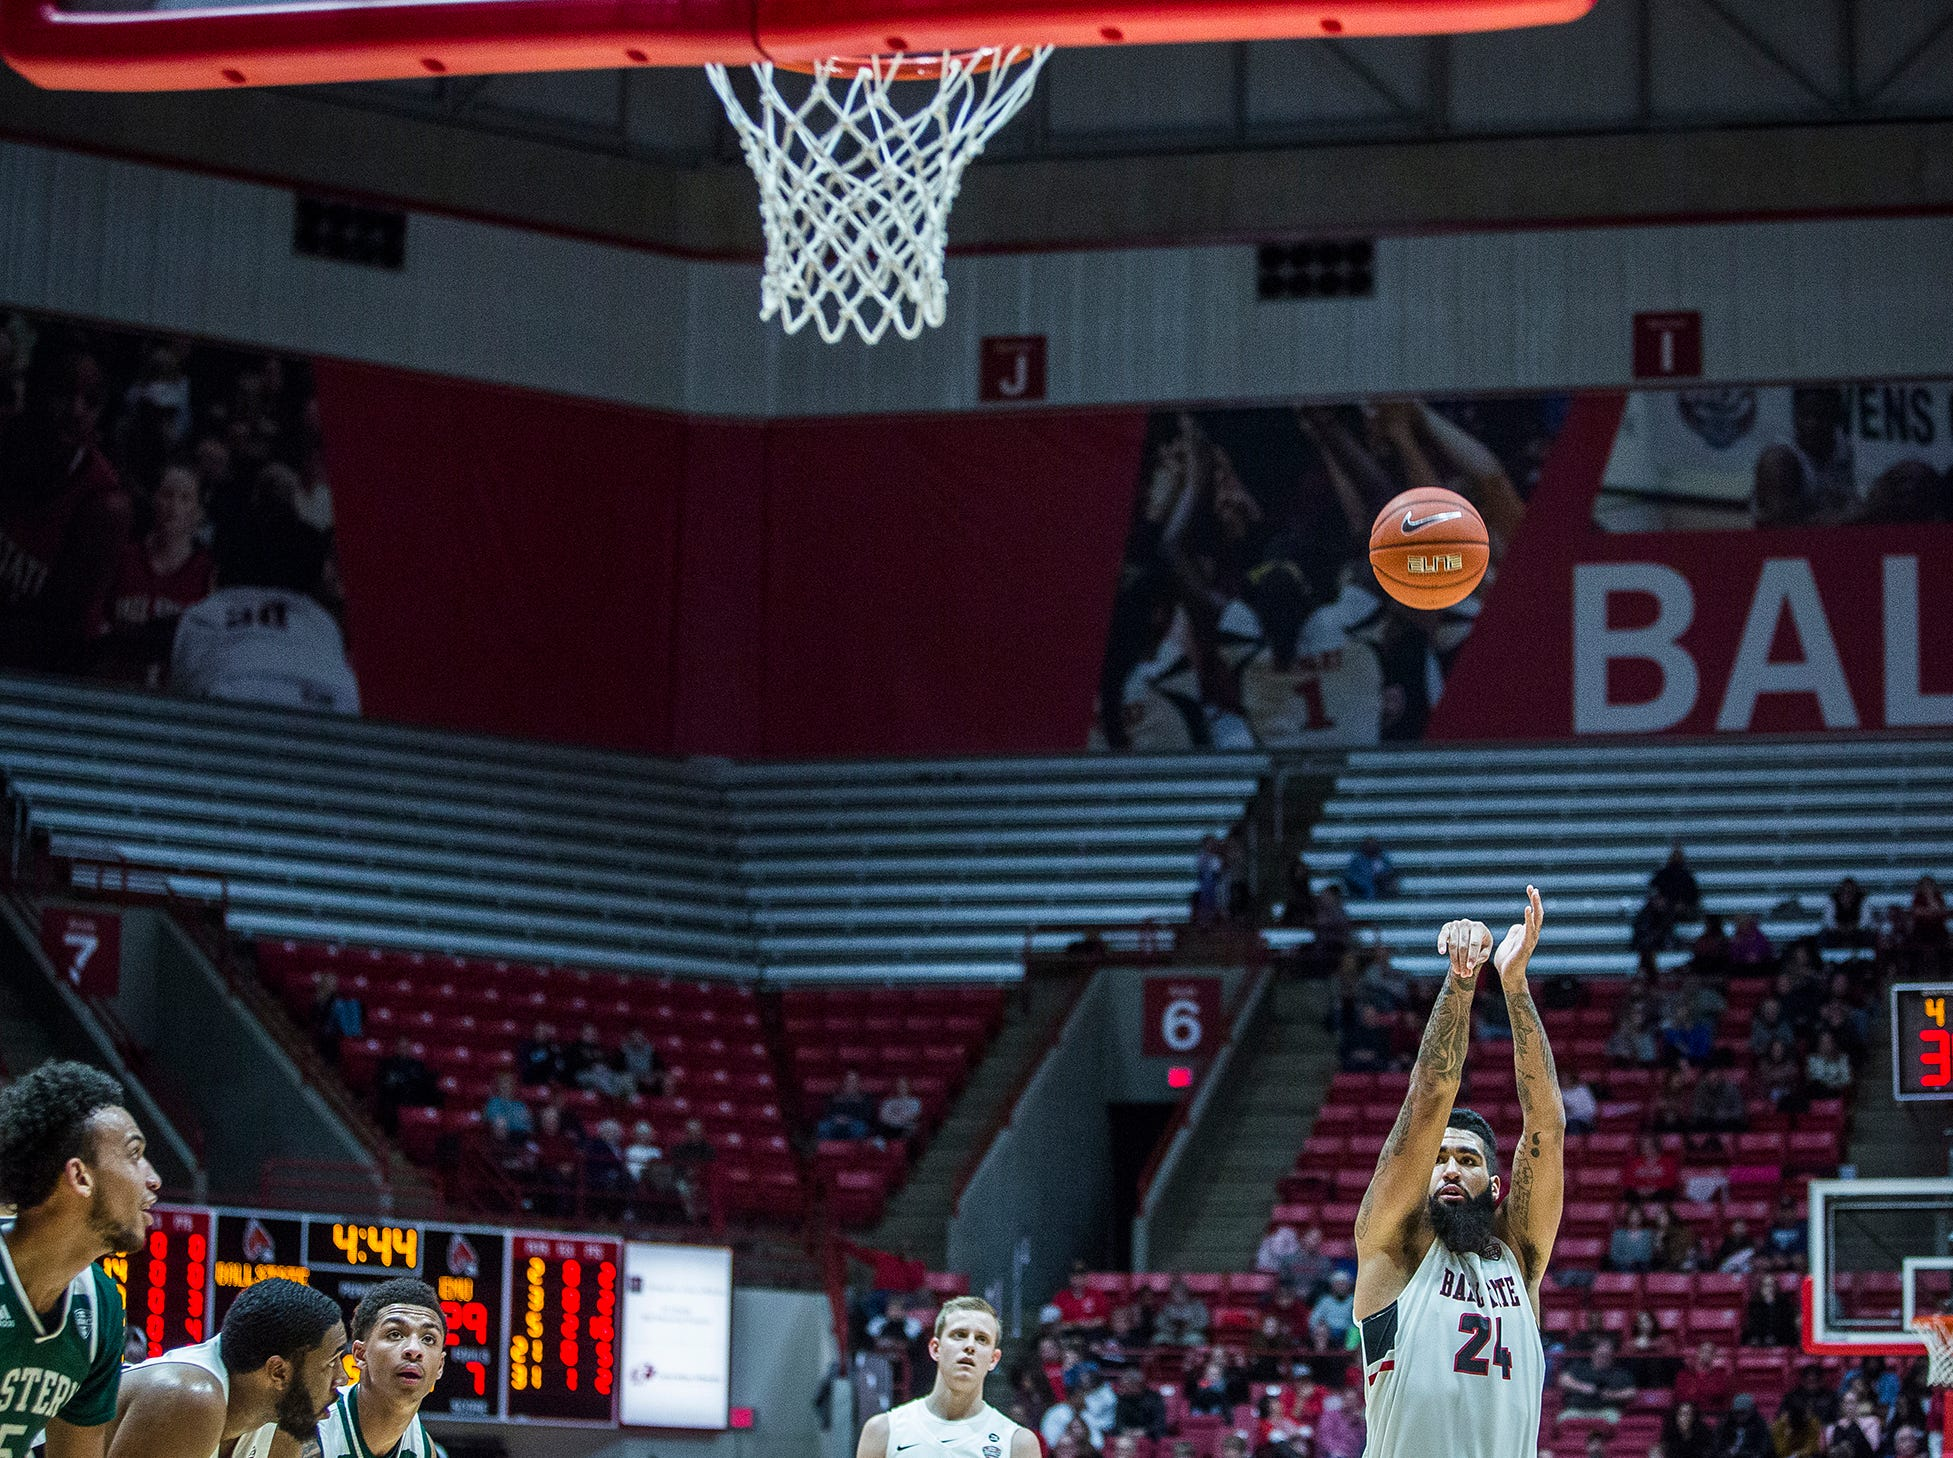 Ball State's Trey Moses shoots a free throw against Eastern Michigan's defense during their game at Worthen Arena Tuesday, Jan. 8, 2019.